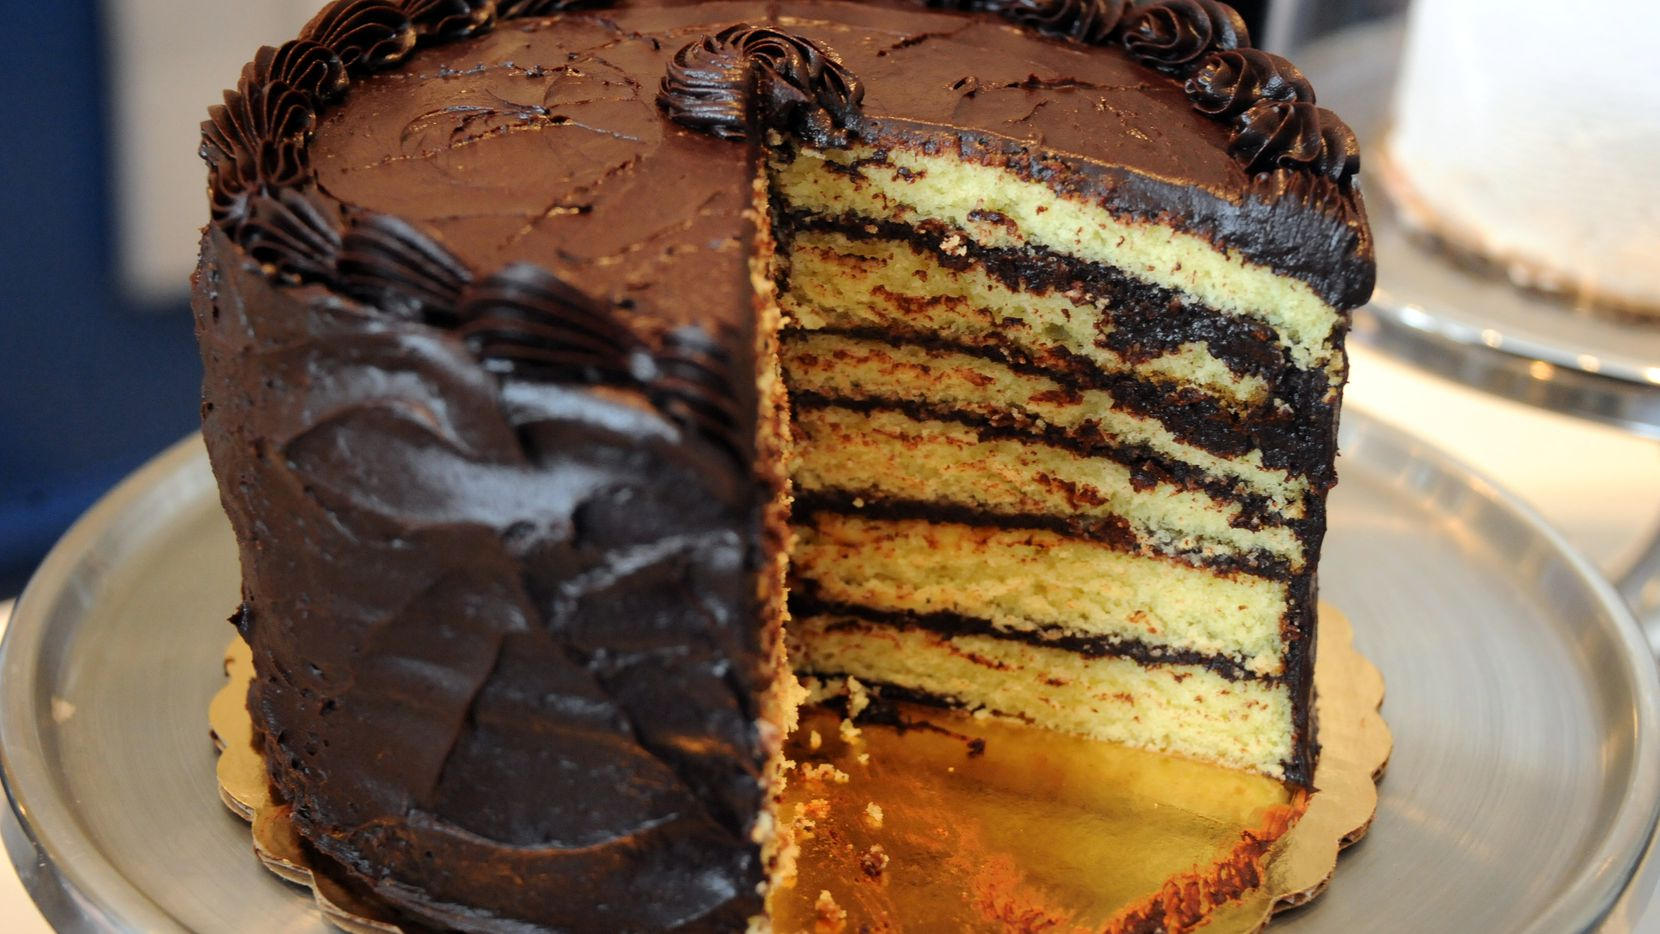 A slice of yellow cake with dark chocolate frosting from Cake Bar in Trinity Groves evokes happy childhood memories.